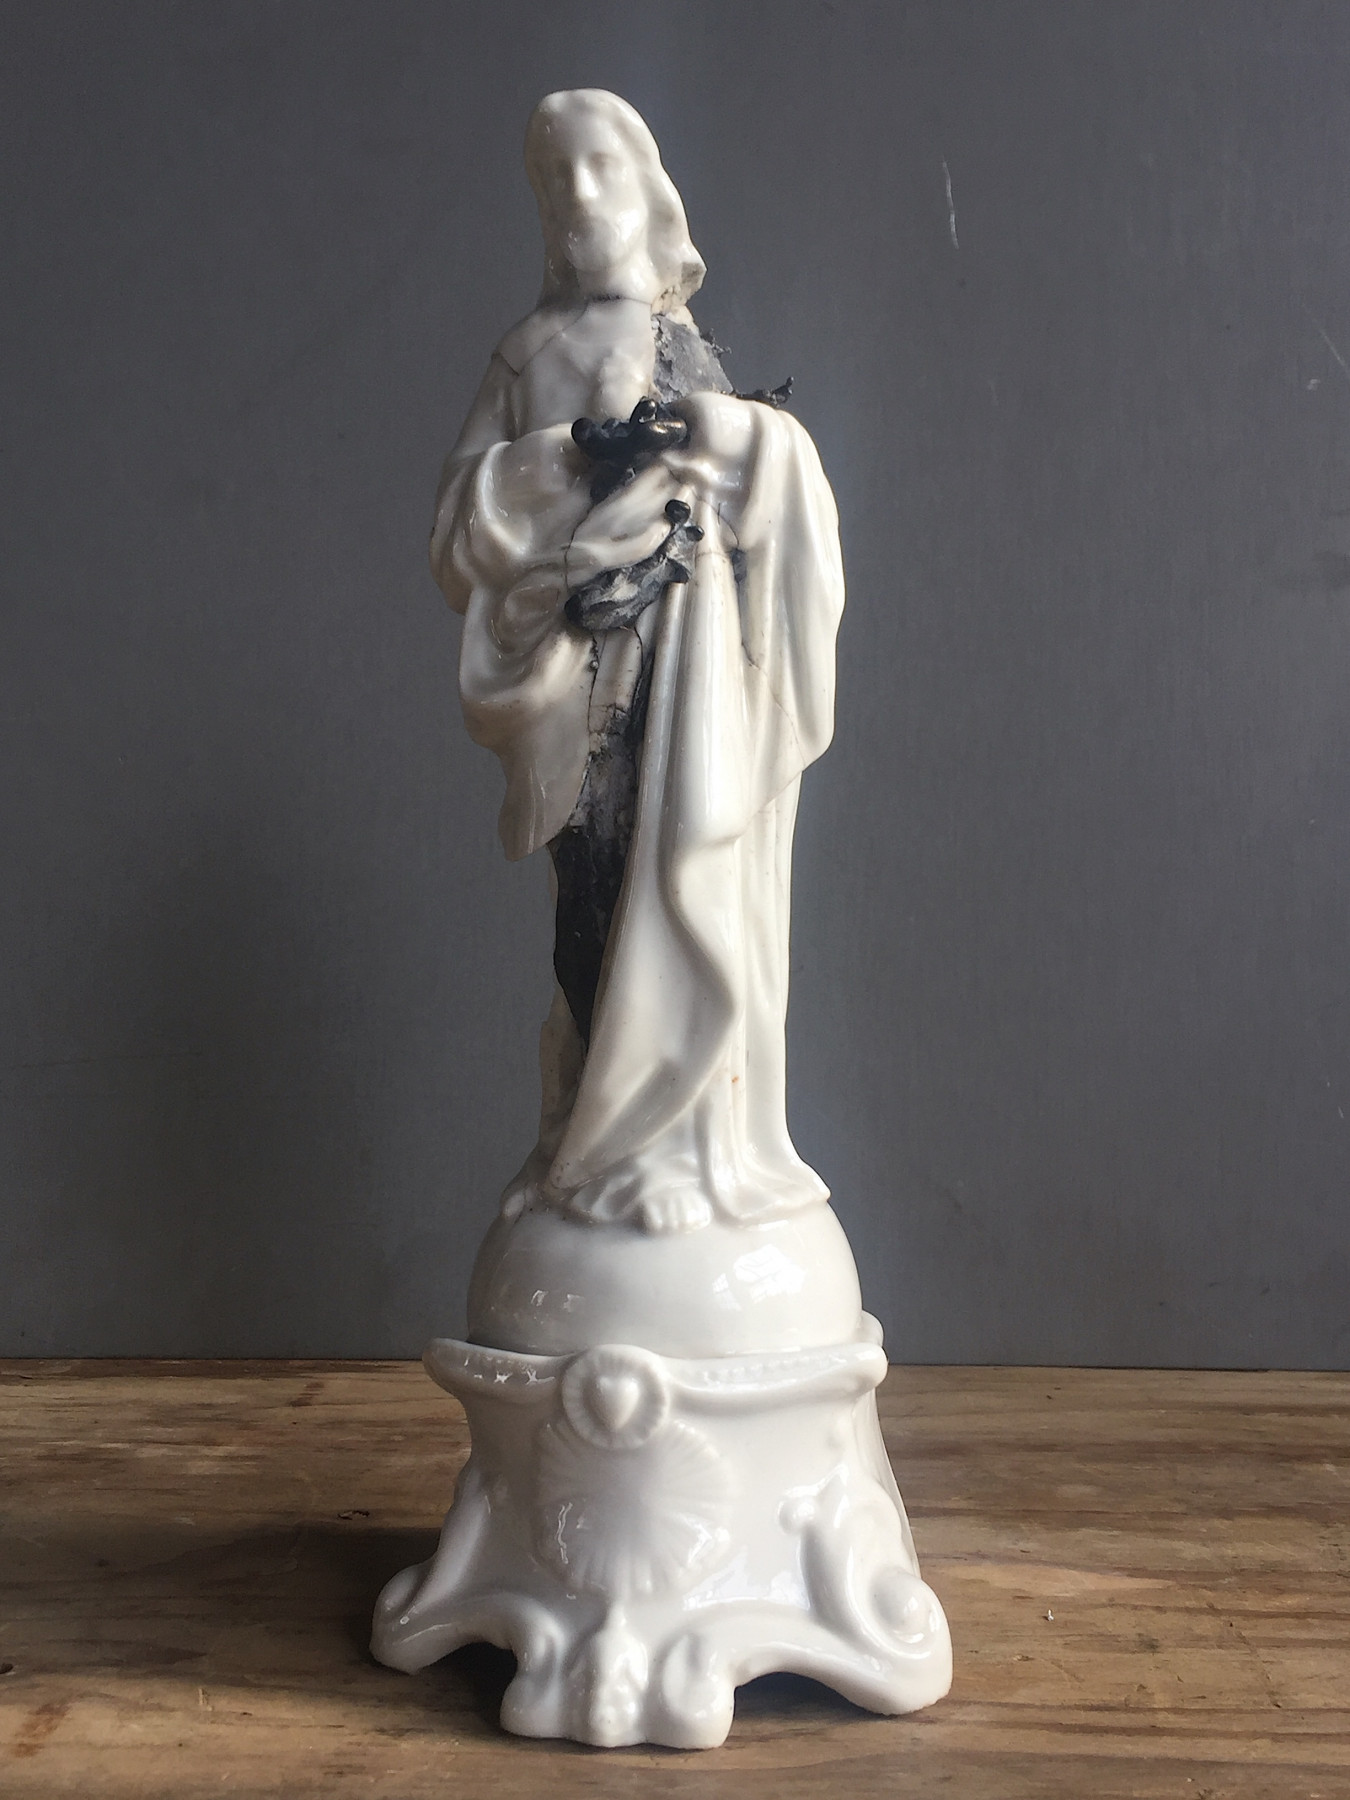 Image of a white ceramic statue of Jesus. Cracked and broken showing an inner core that is pewter and patinted black.